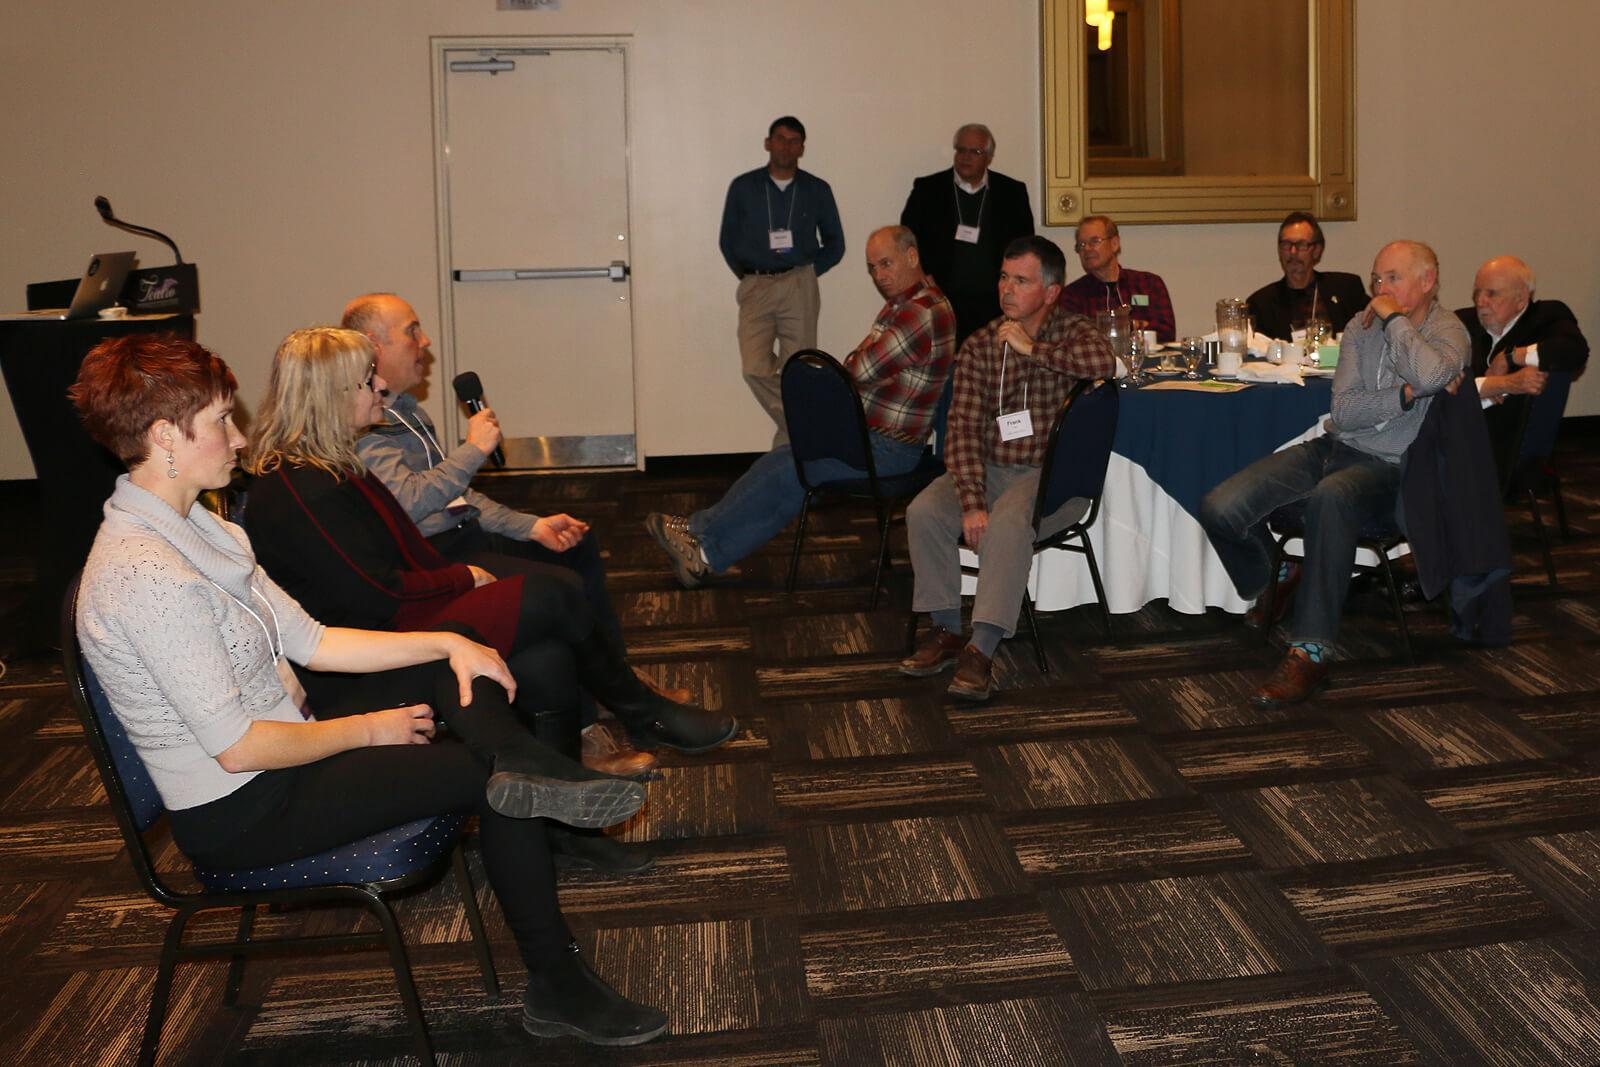 After the presentations, growers took the opportunity to discuss policies and factors that affect their business operations.